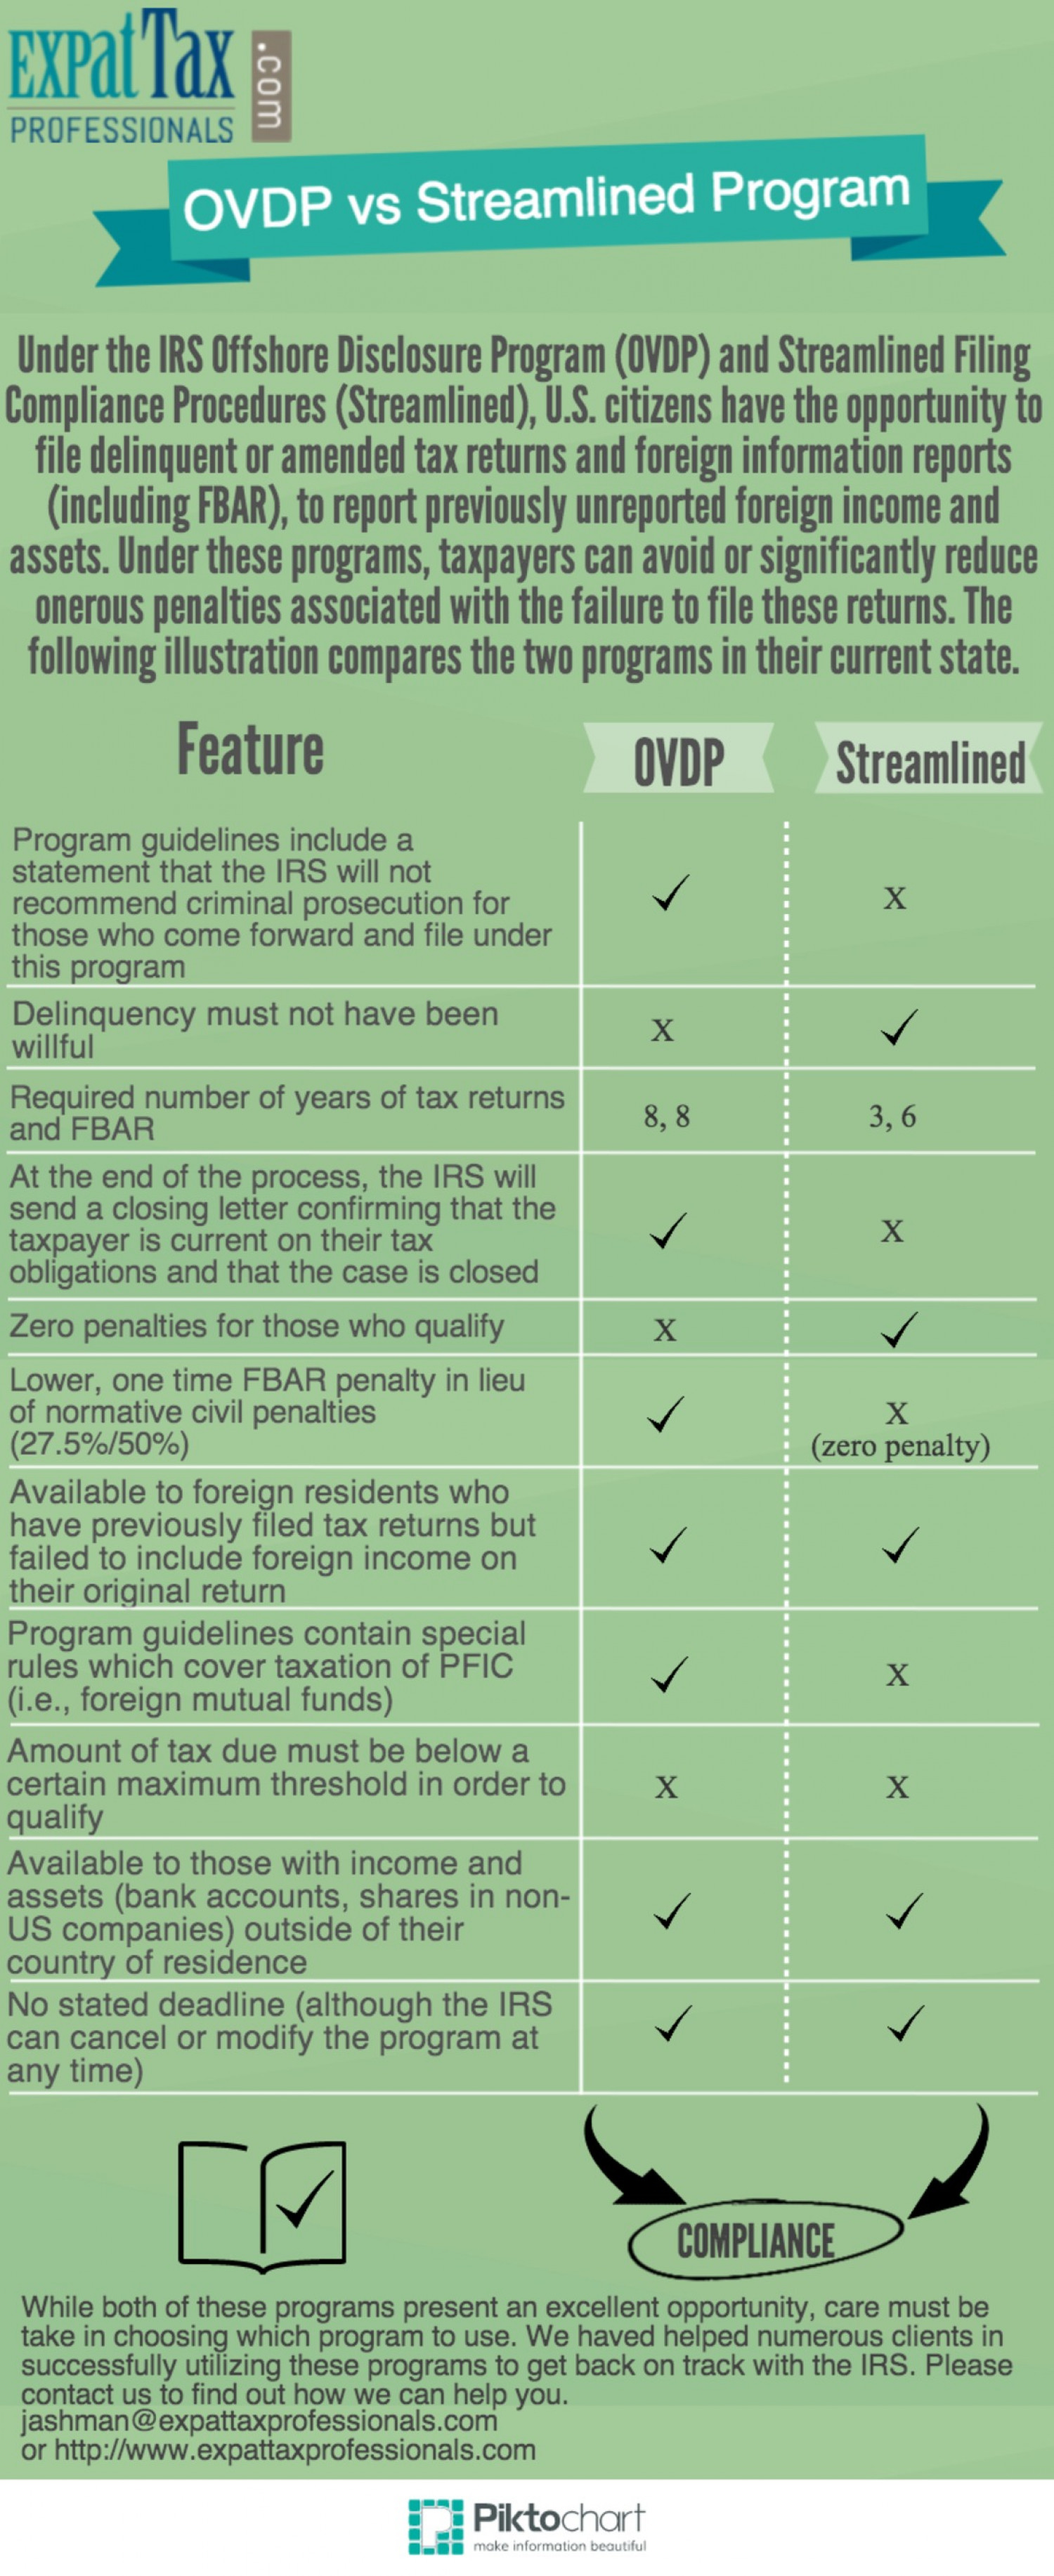 OVDP vs Streamlined Program - Expat Tax Professionals Infographic